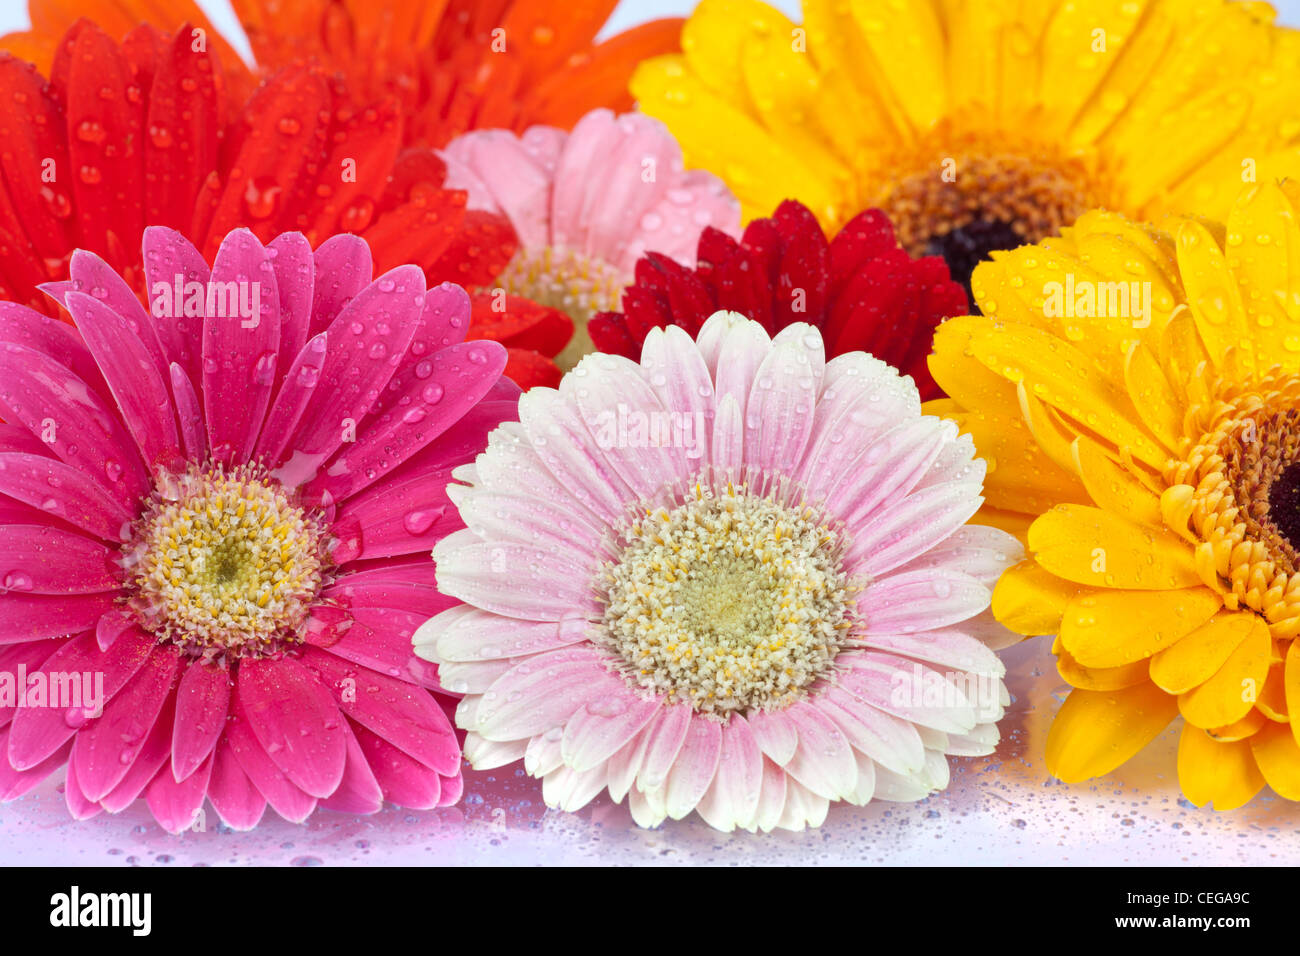 Background Of Colorful Fresh Daisy Blossoms With Water Drops Stock